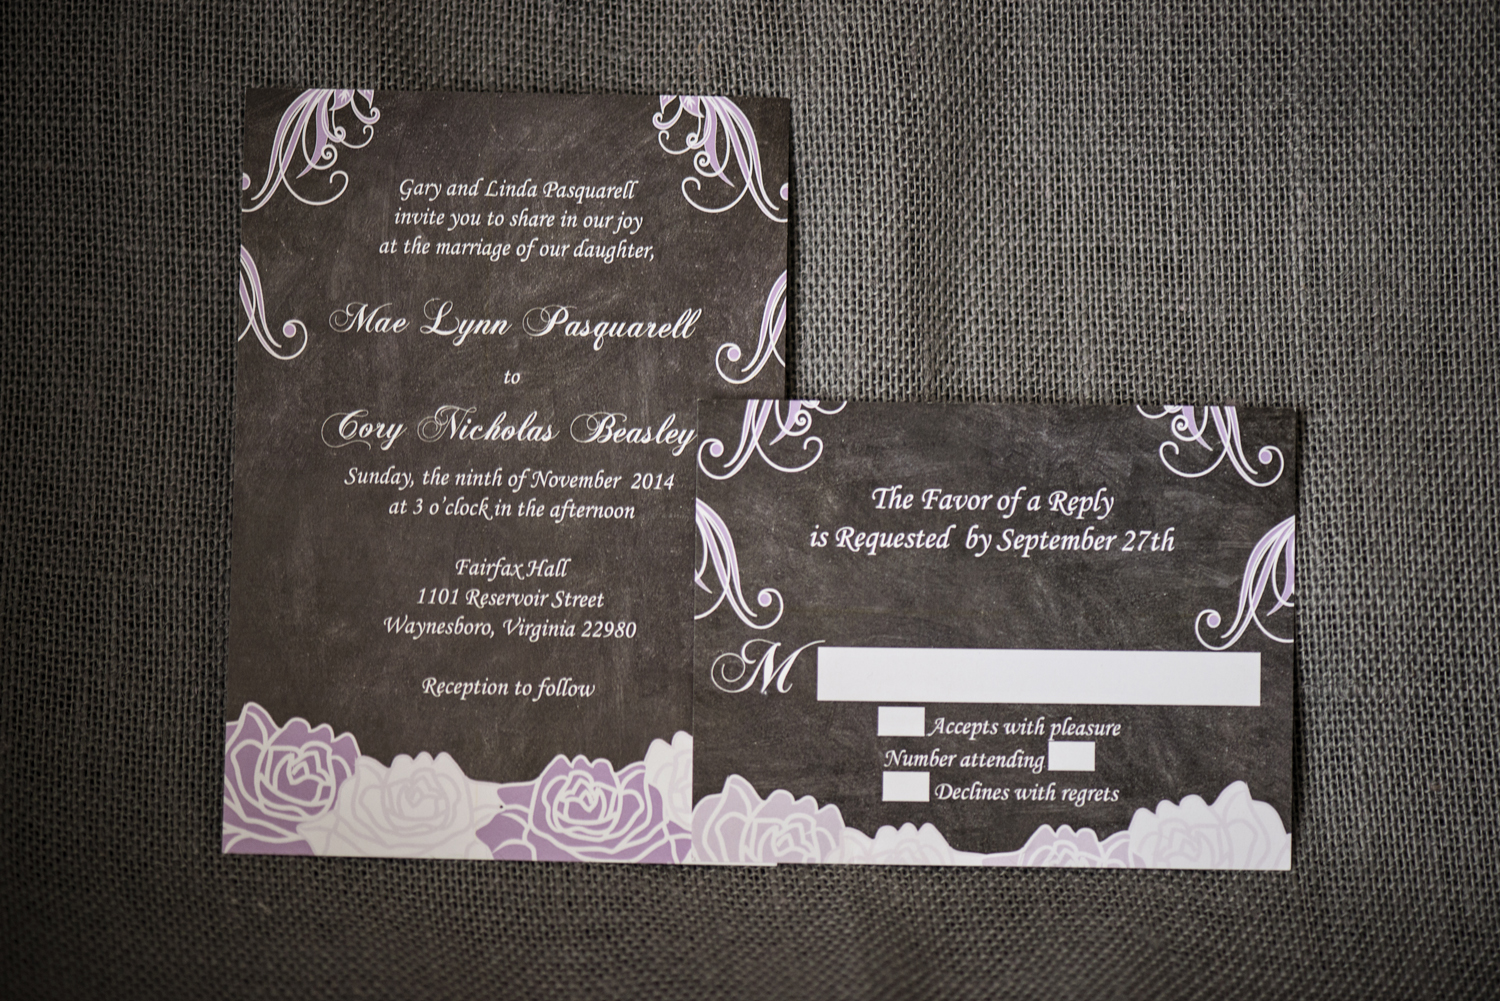 Chalkboard, purple, and white invitations from Etsy